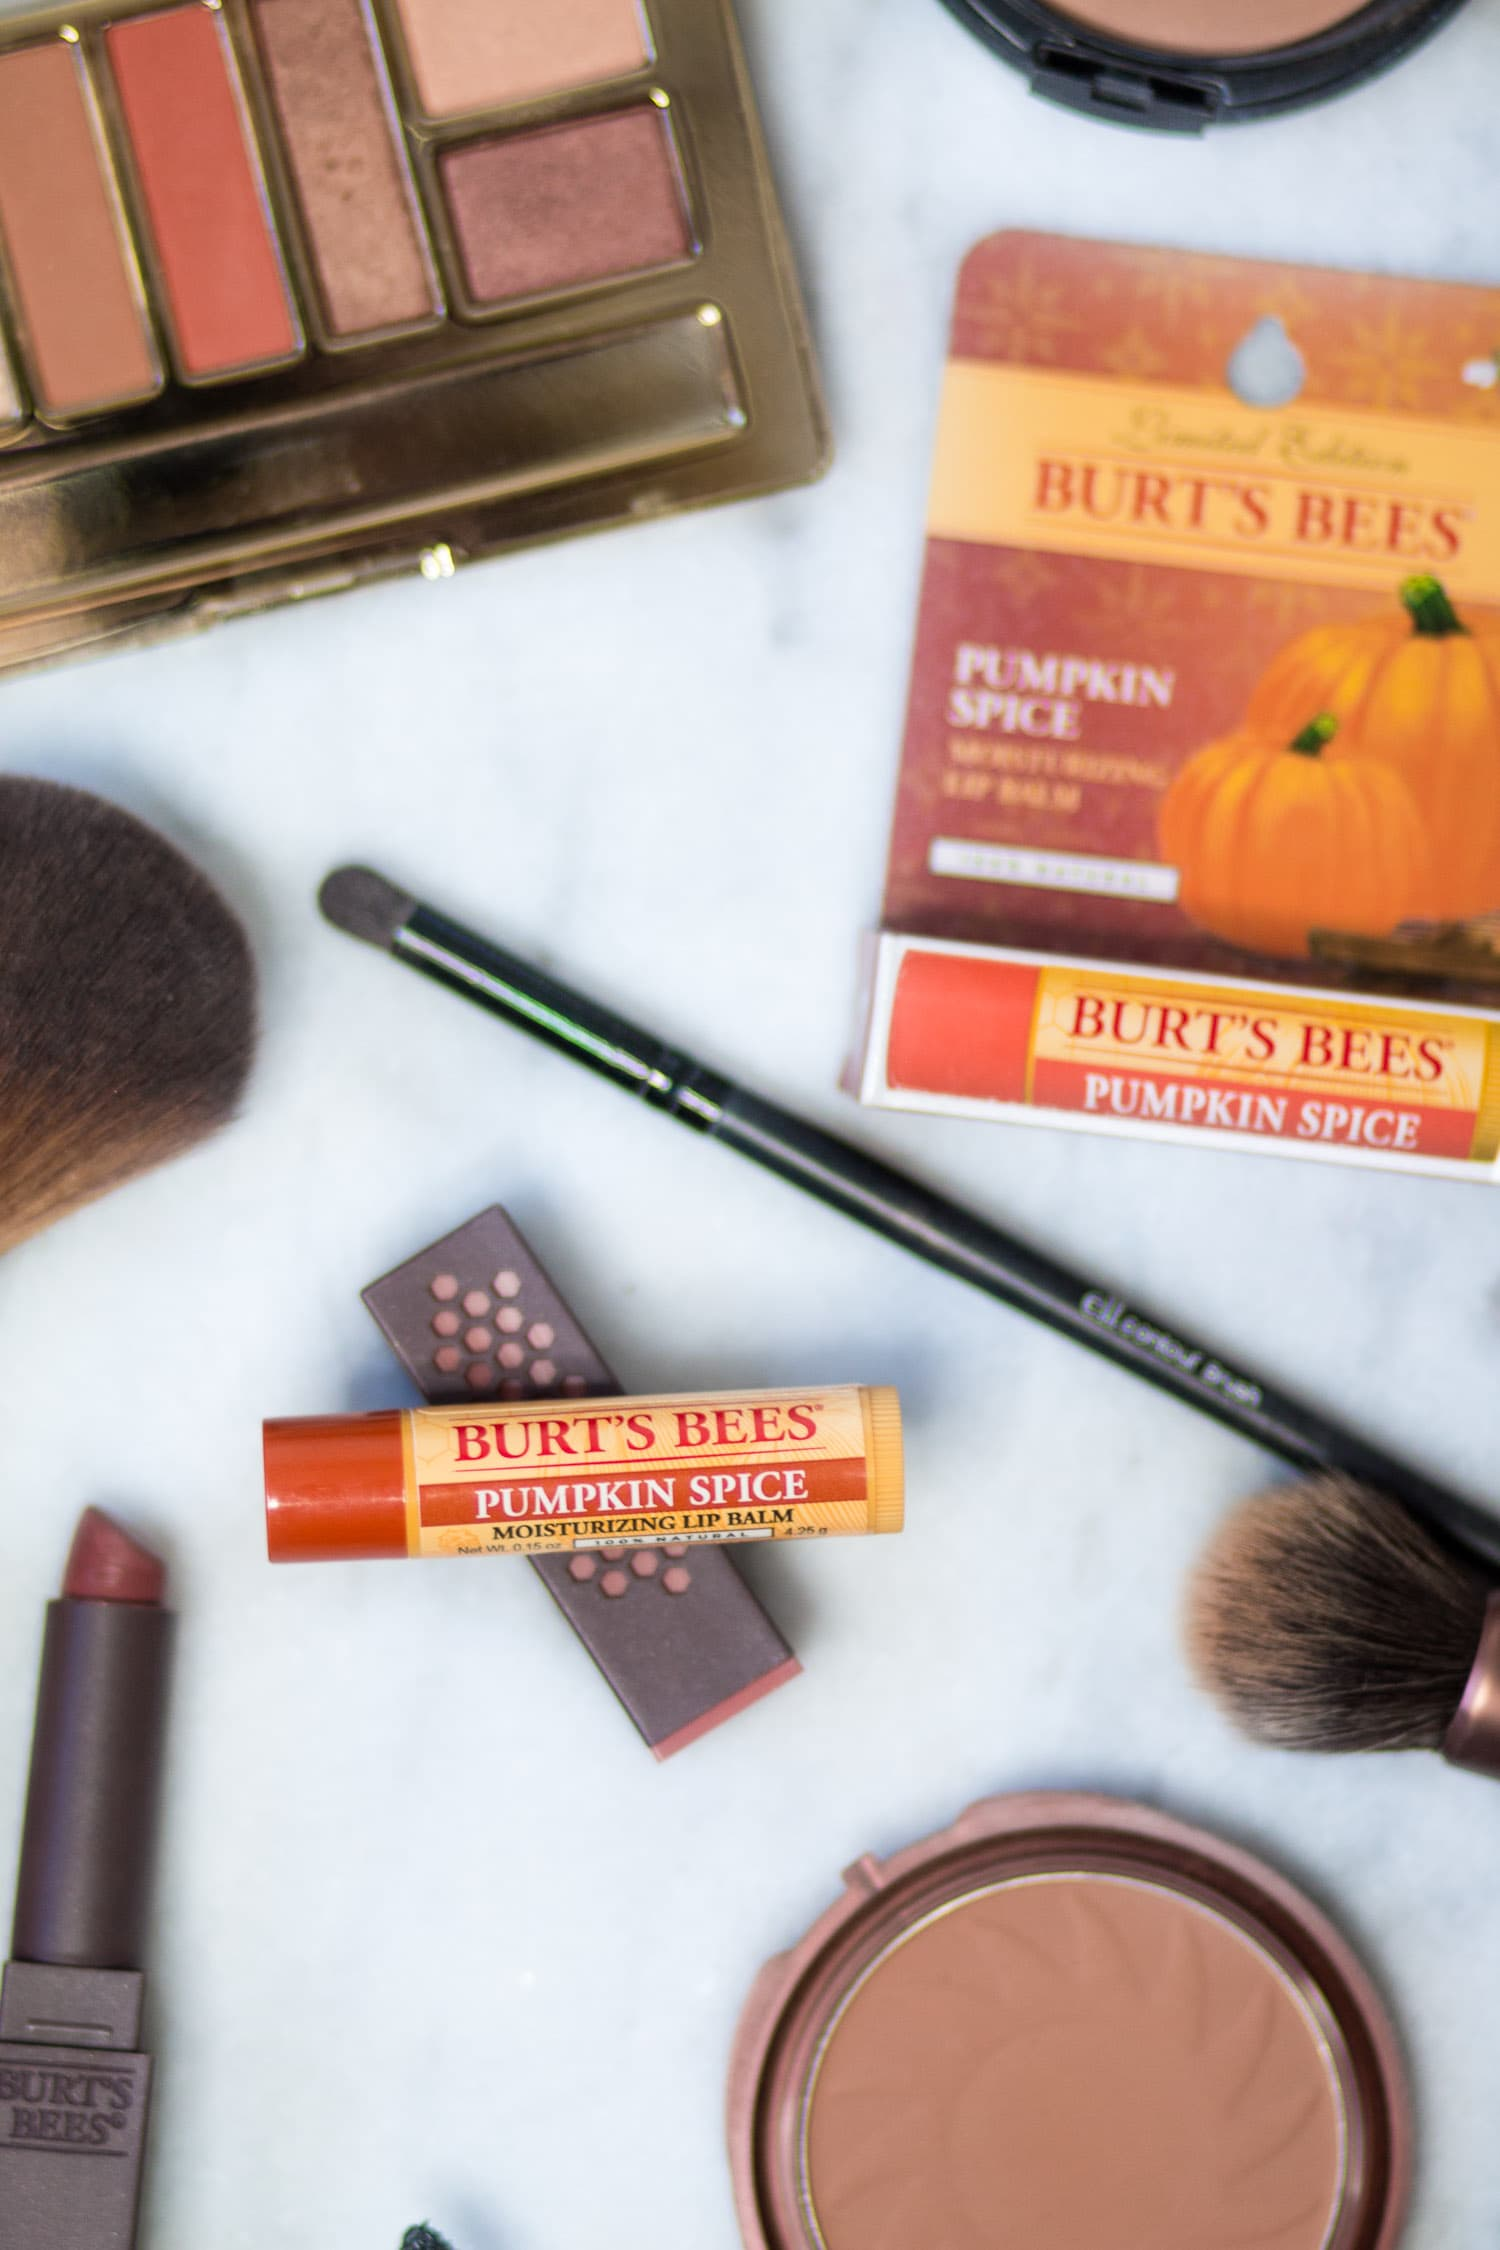 Easy pumpkin spice makeup tutorial featuring all drugstore makeup and Burt's Bees Pumpkin Spice lip balm by beauty blogger Ashley Brooke Nicholas